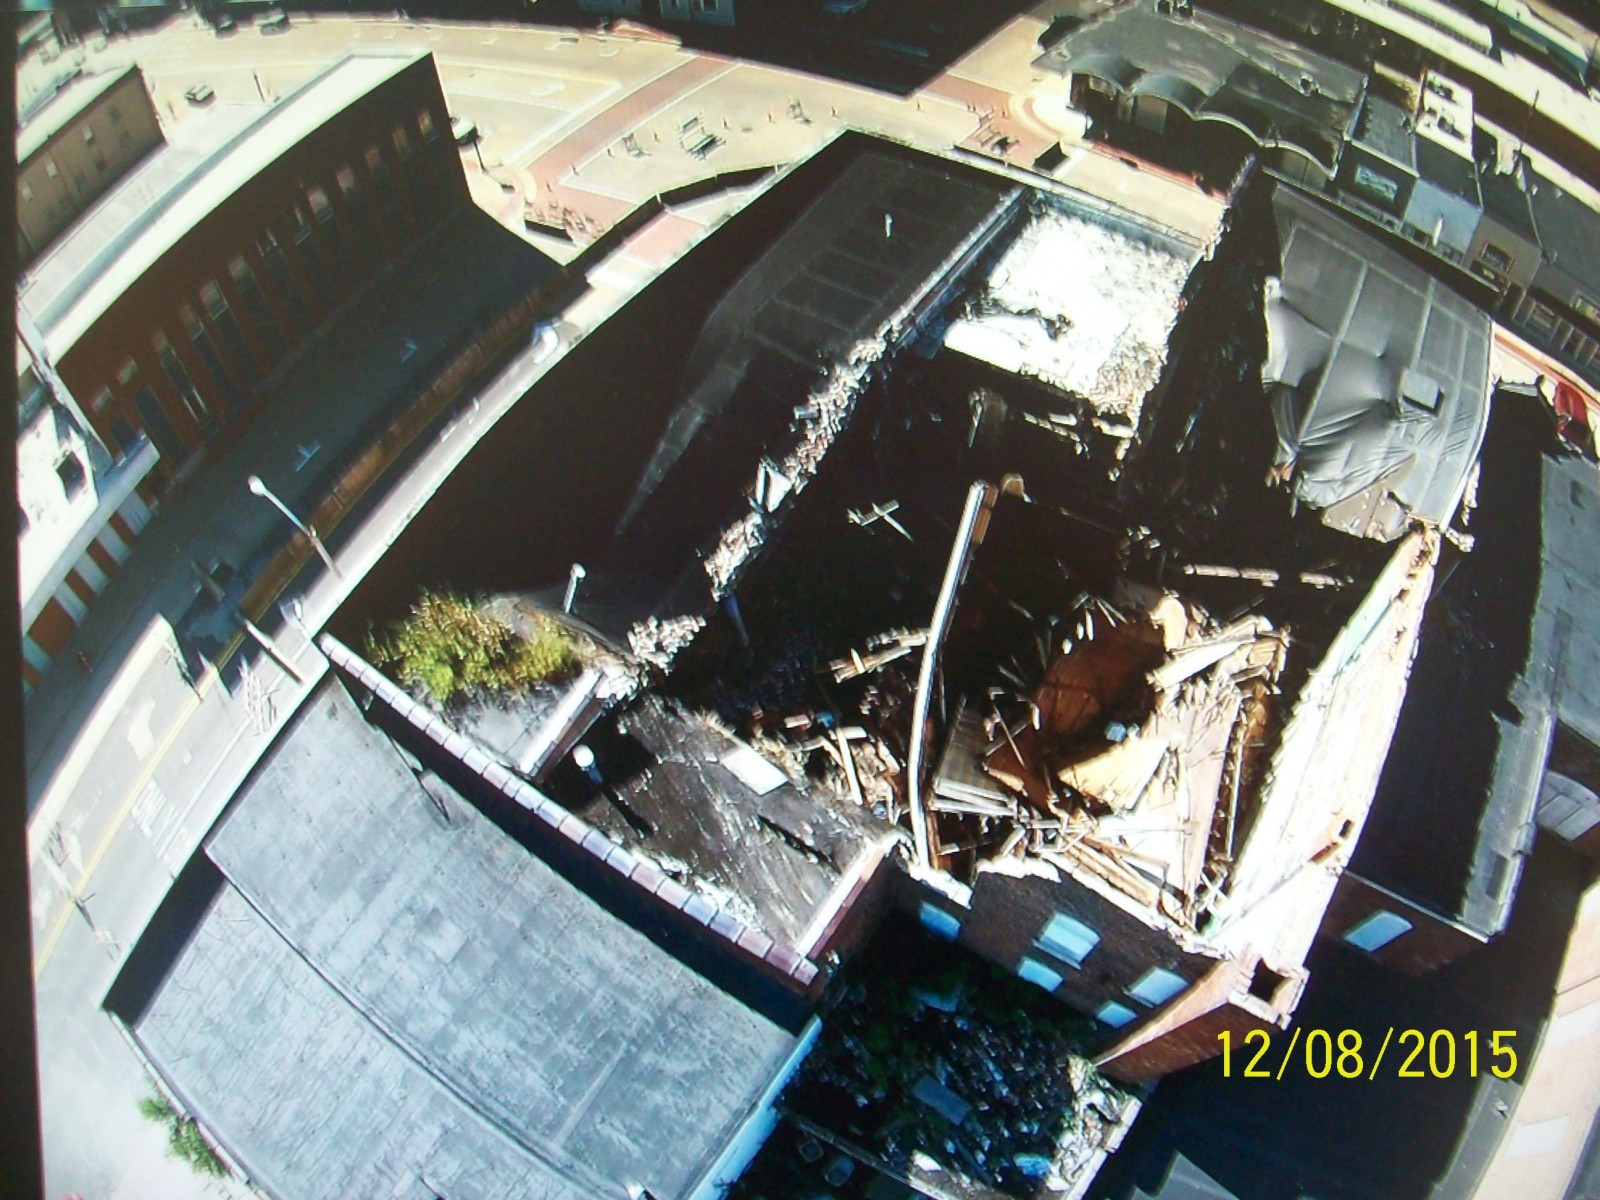 New Video of collapsed buildings taken by Fayette Co Sheriff's Drone